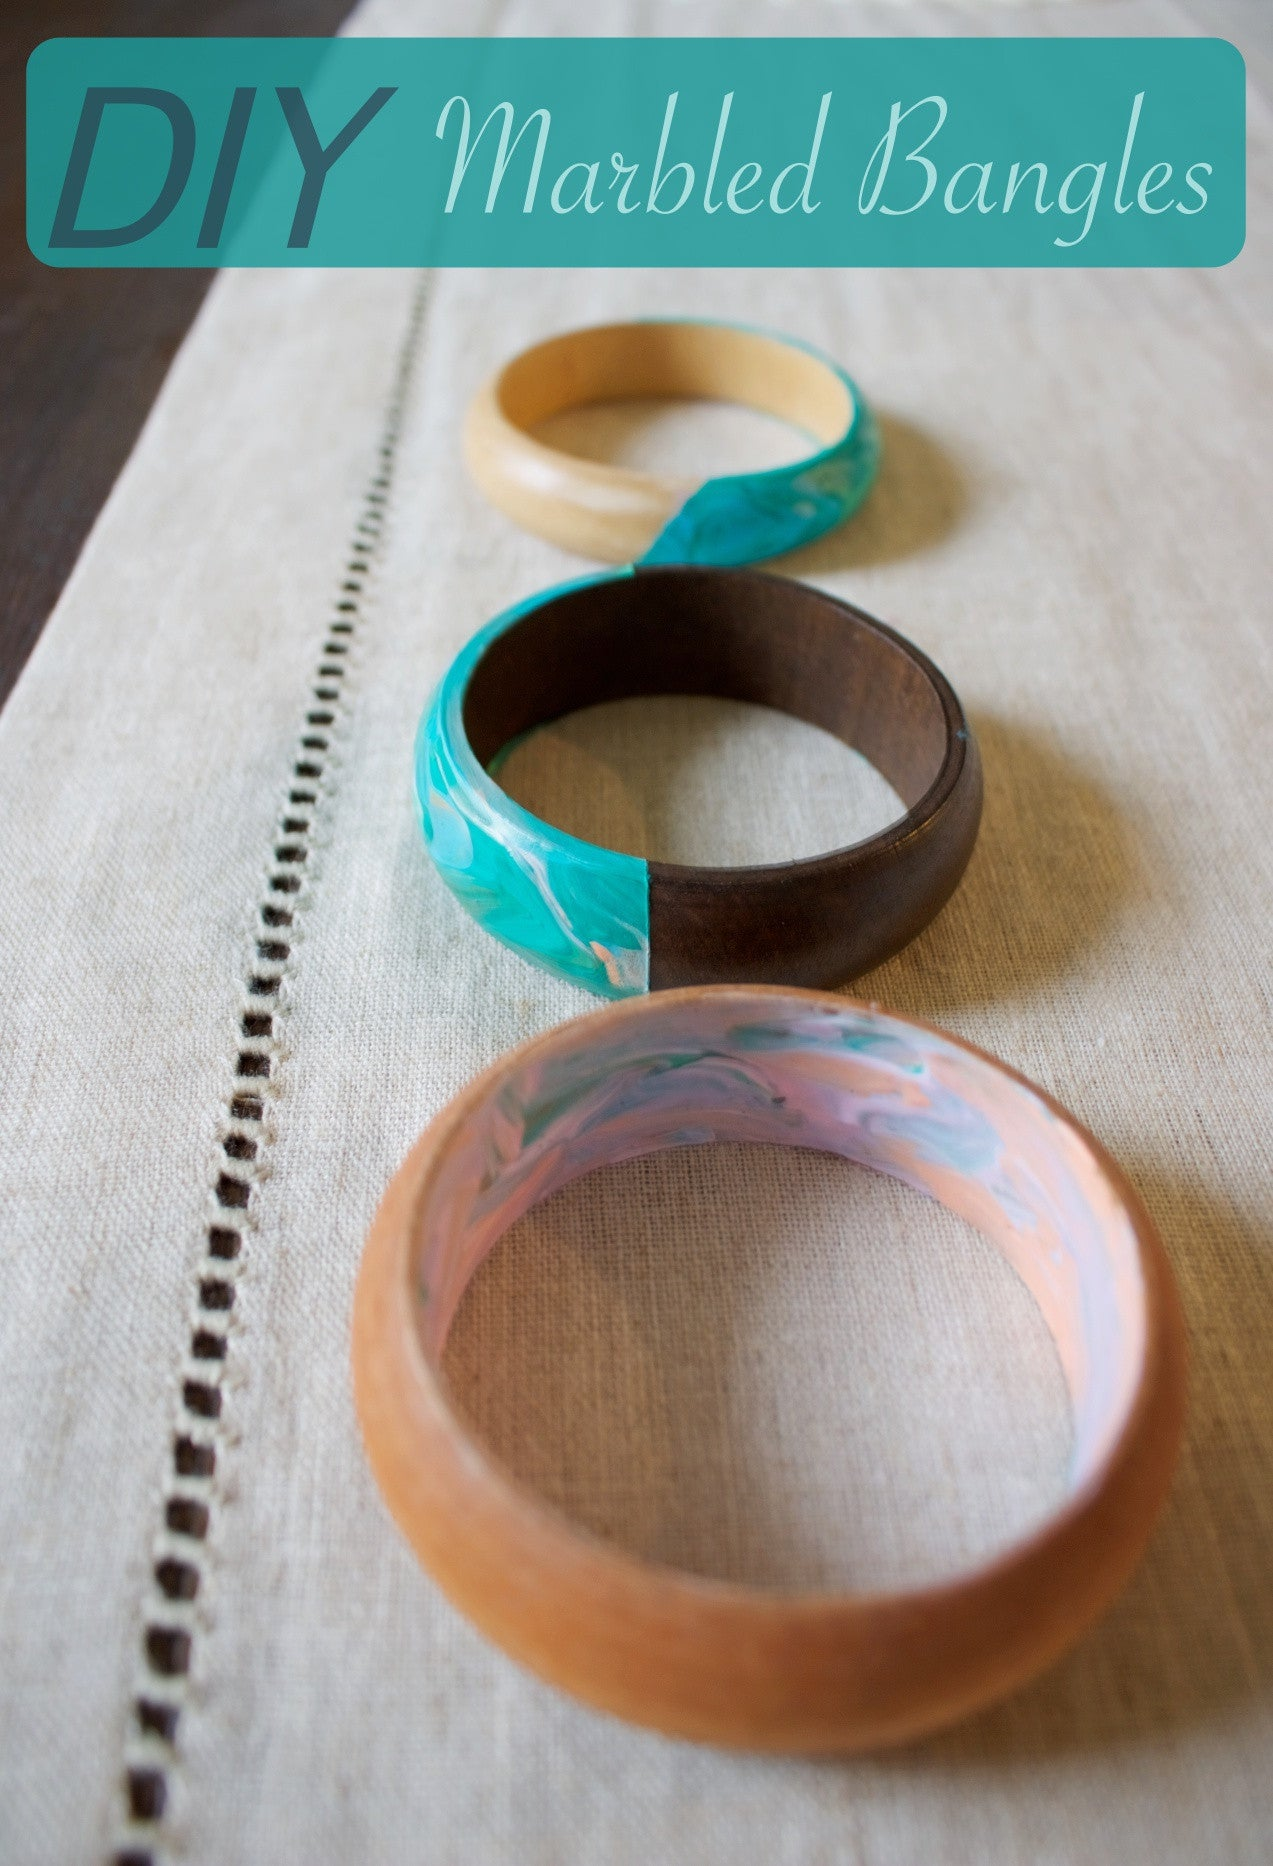 DIY Marbled Bangles